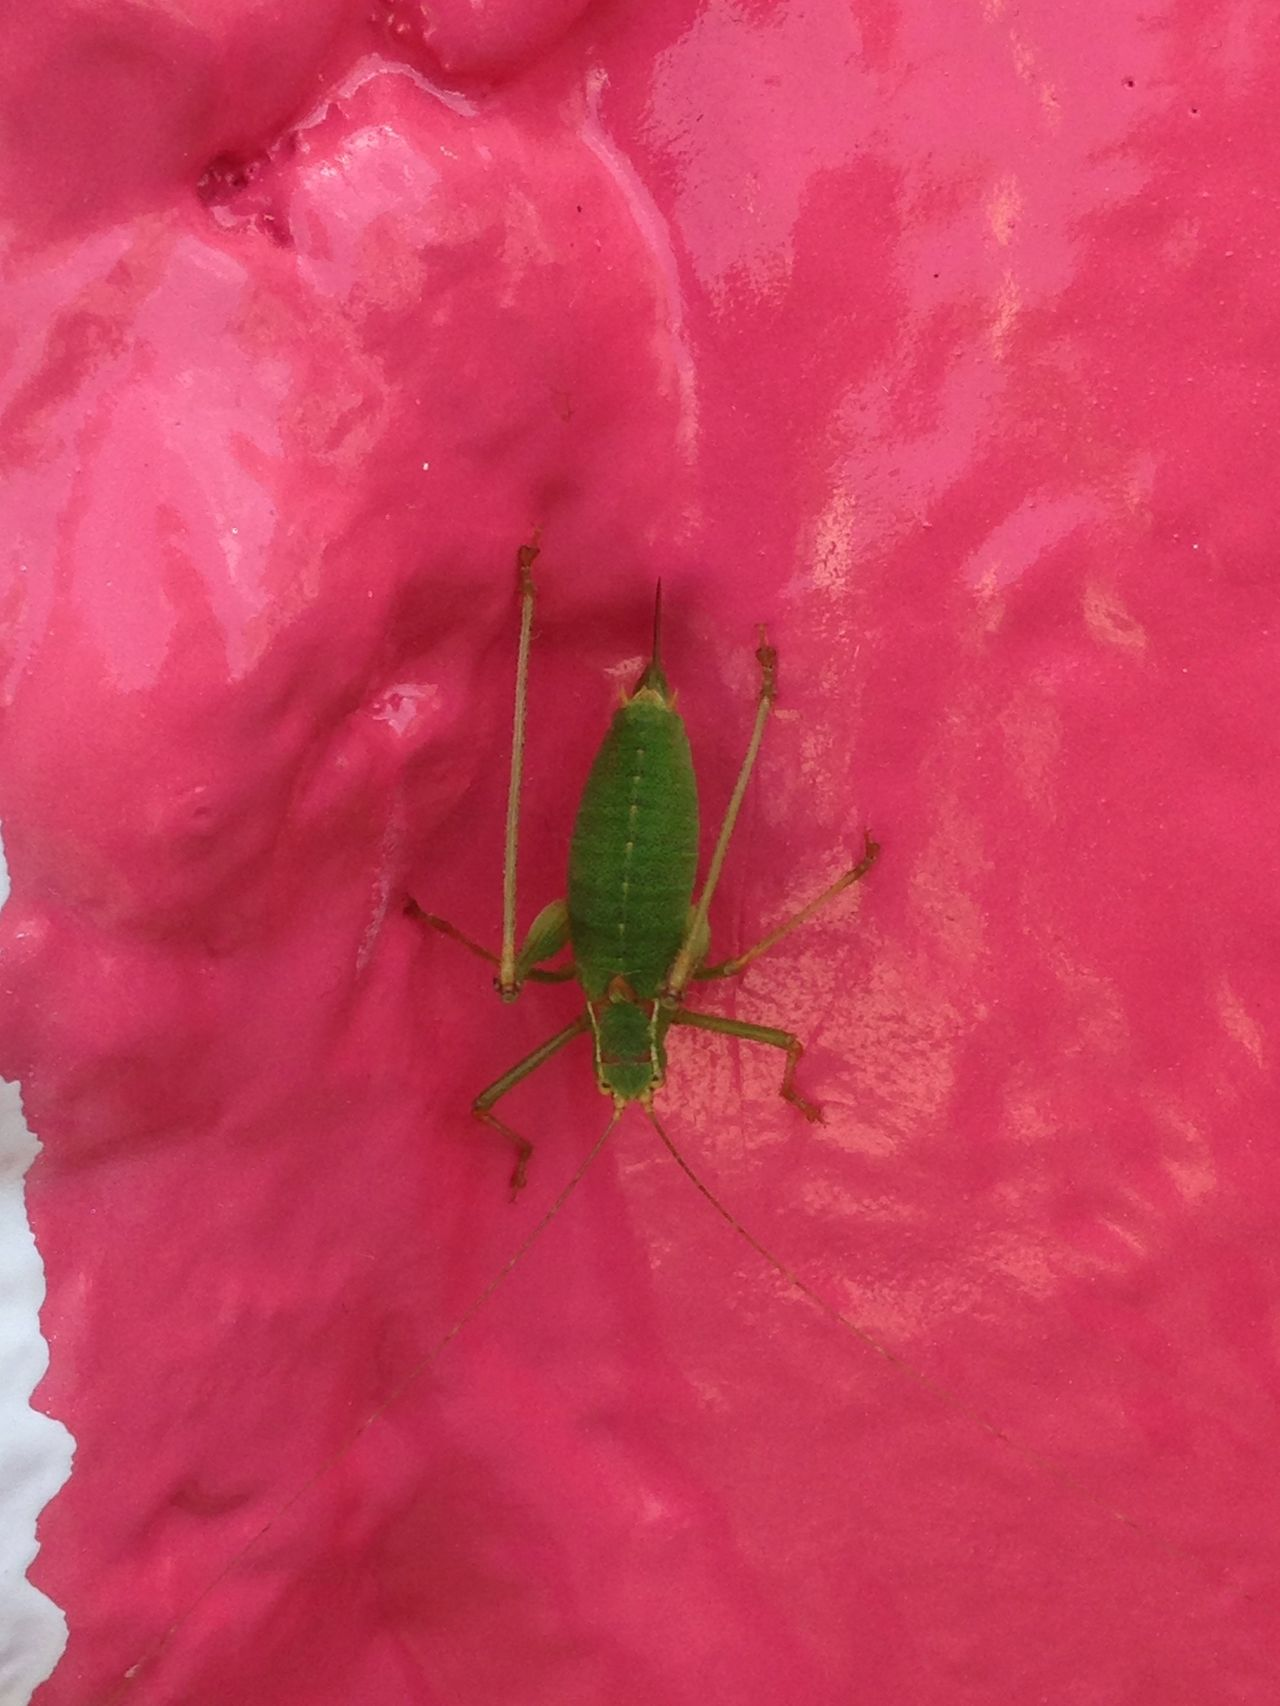 Bug Greenbug Check This Out